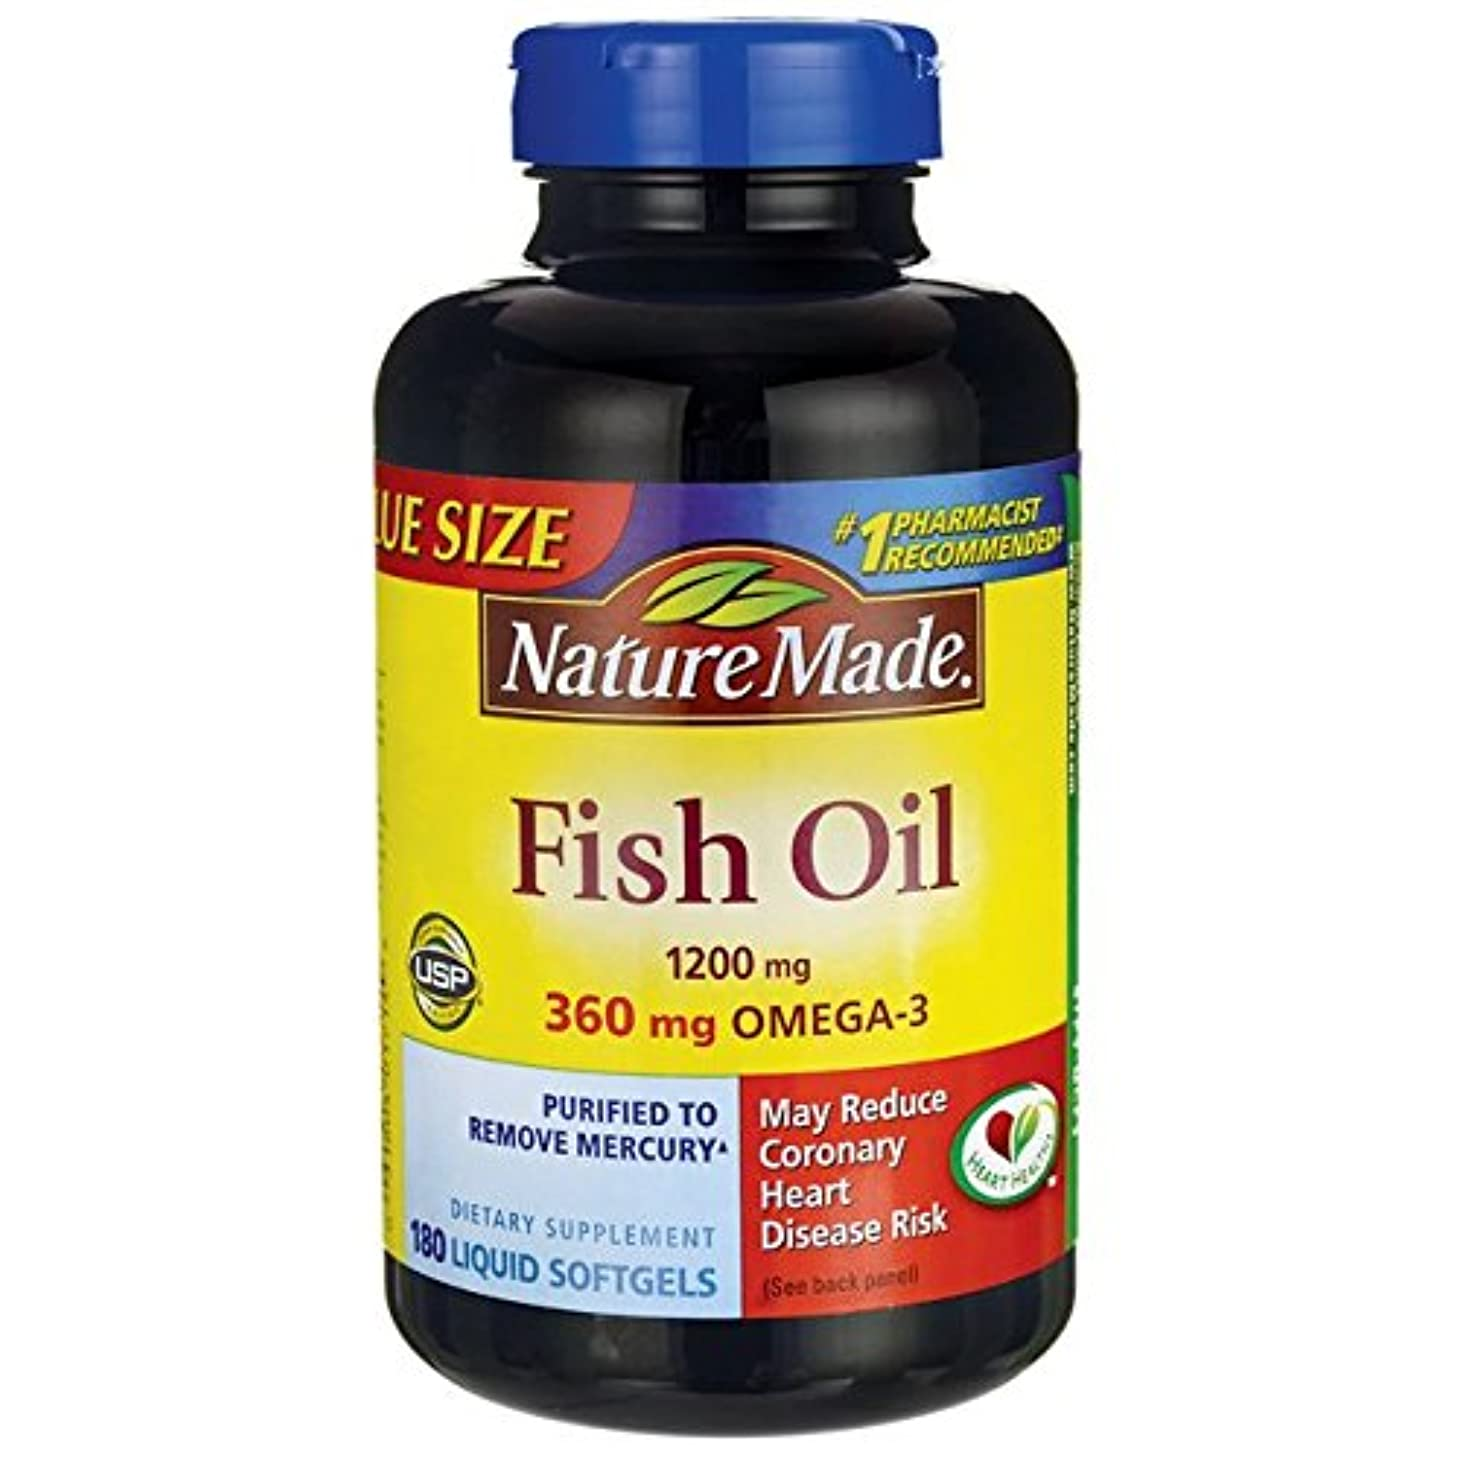 幸運なみがきますさらにNature Made Fish Oil Omega-3 1200mg, (180 Liquid Soft Gels) by Nature Made